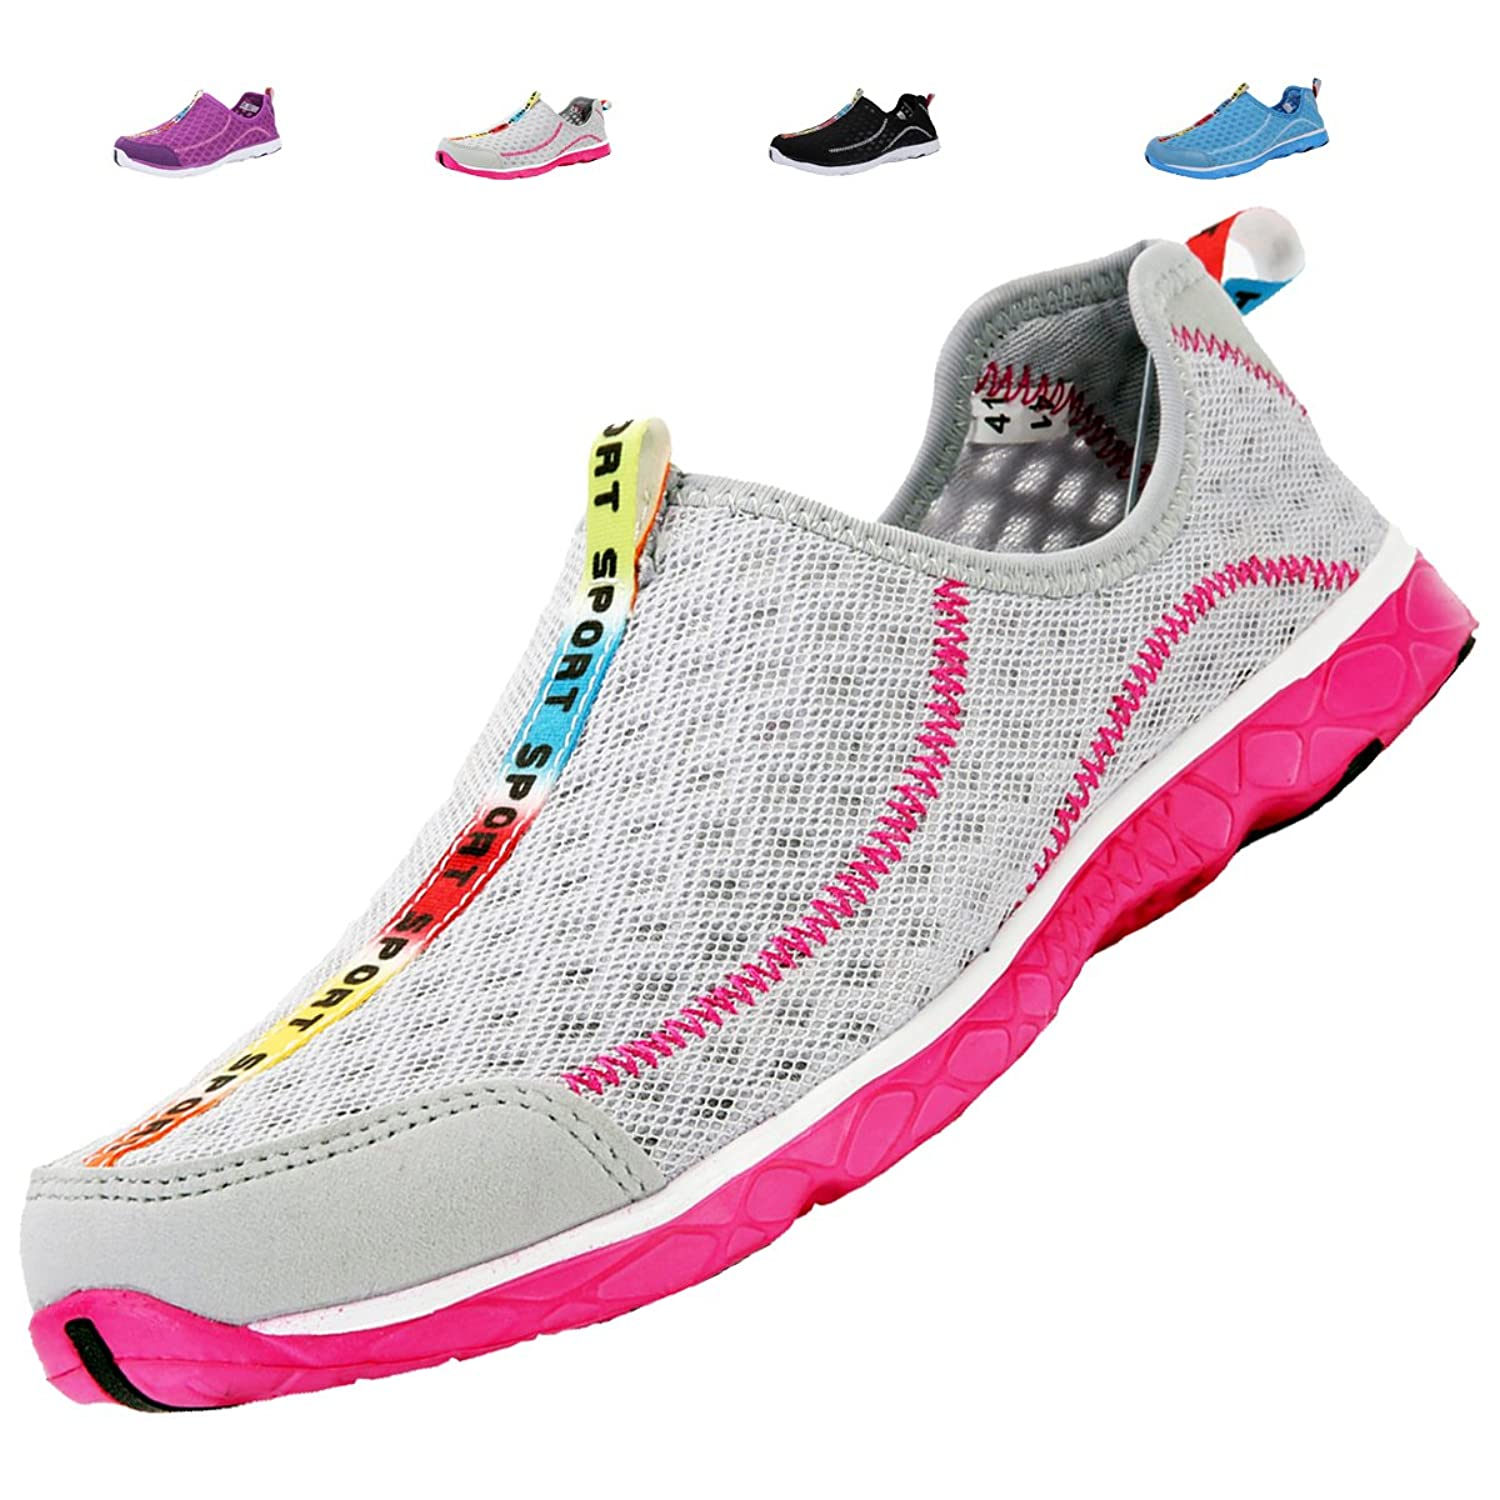 Womens Mens Water Shoes - Perfect For Aqua Water Sports - Mesh Quick Drying - Lightweight Comfortable and Breathable